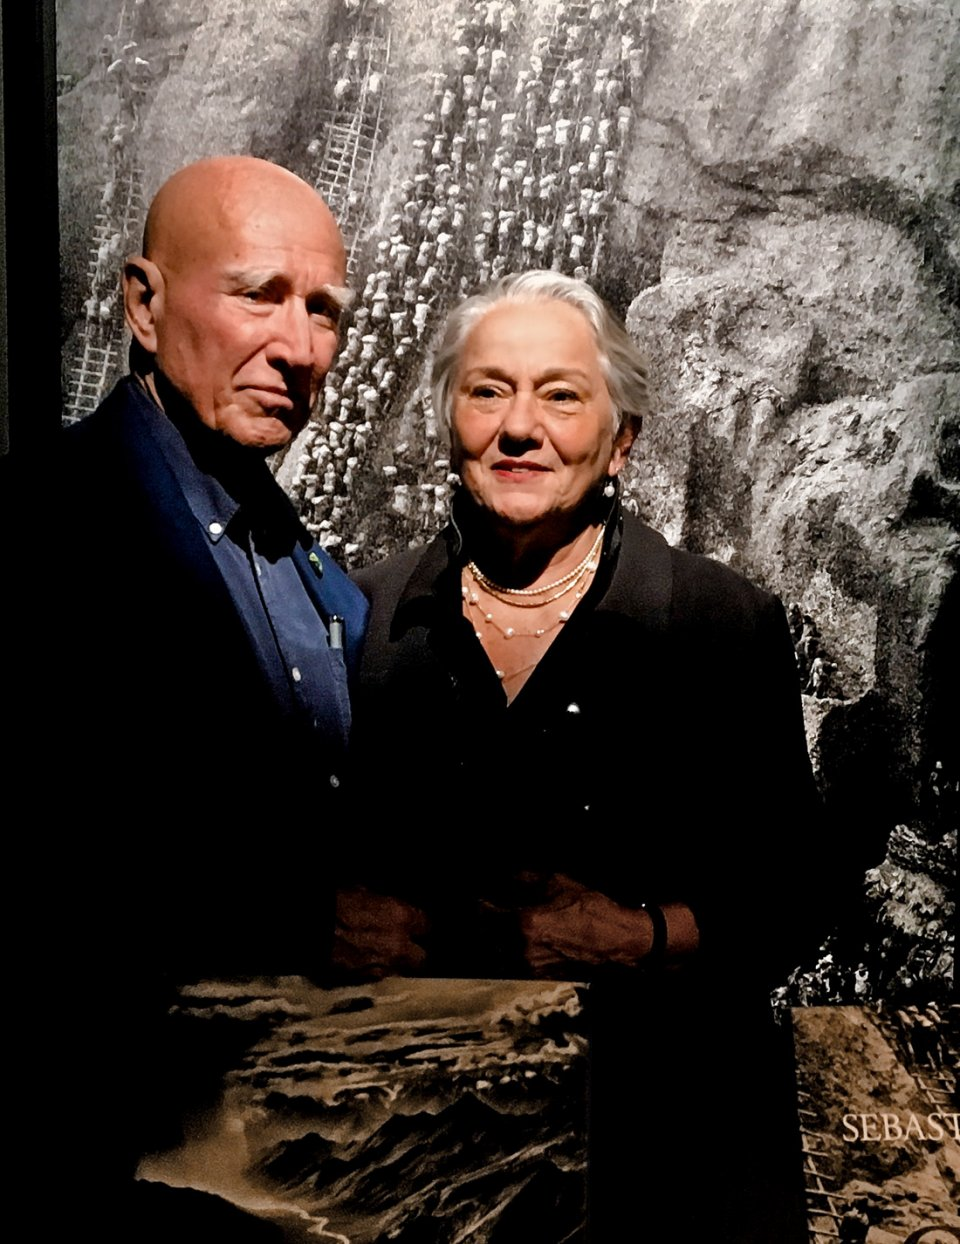 Sebastião Salgado with his wife Lélia